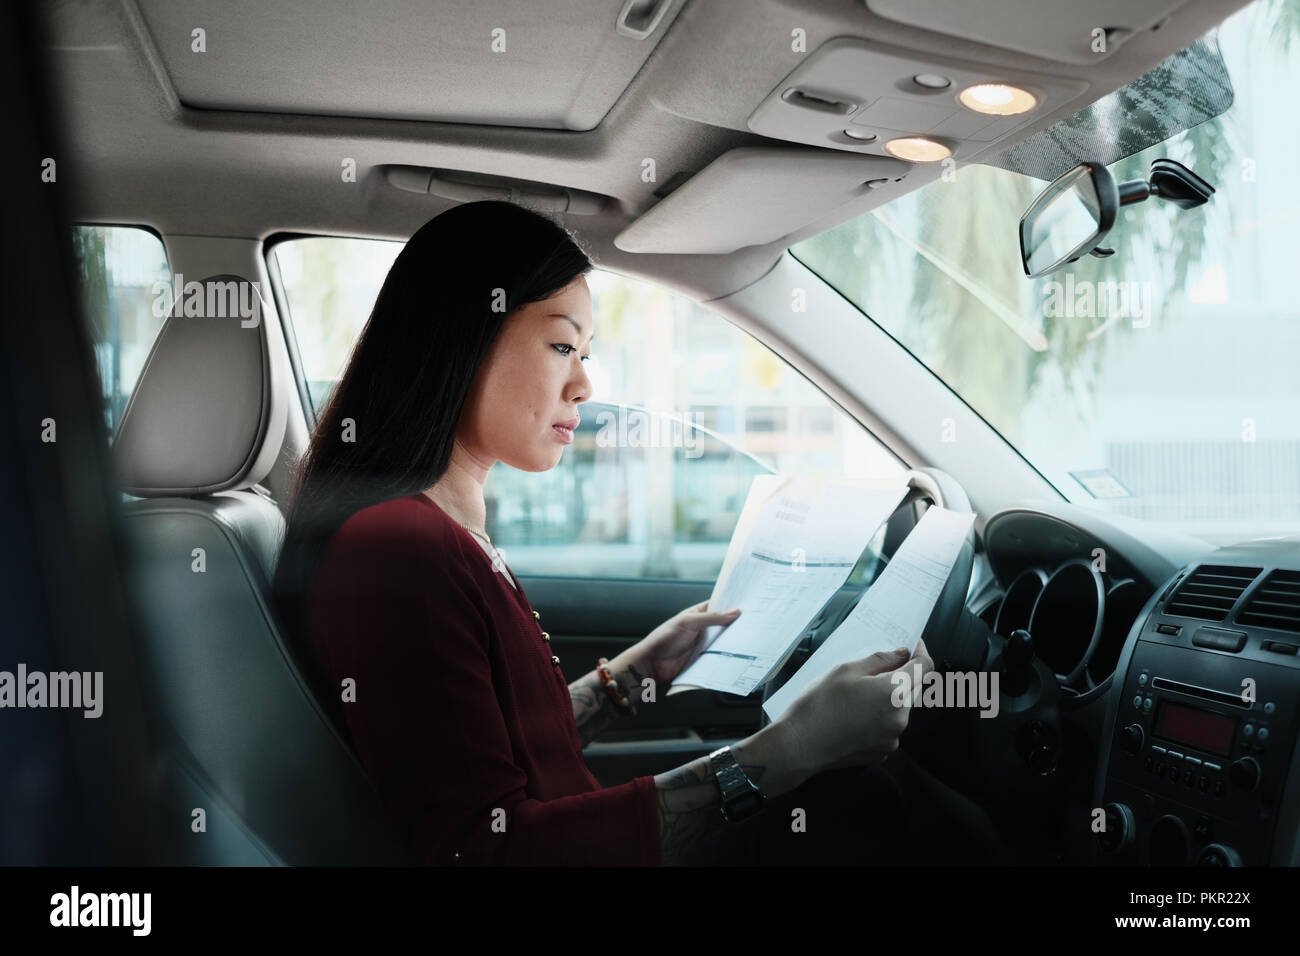 Chinese female manager working in car. Successful Asian businesswoman using laptop computer and looking at paperwork. Stock Photo